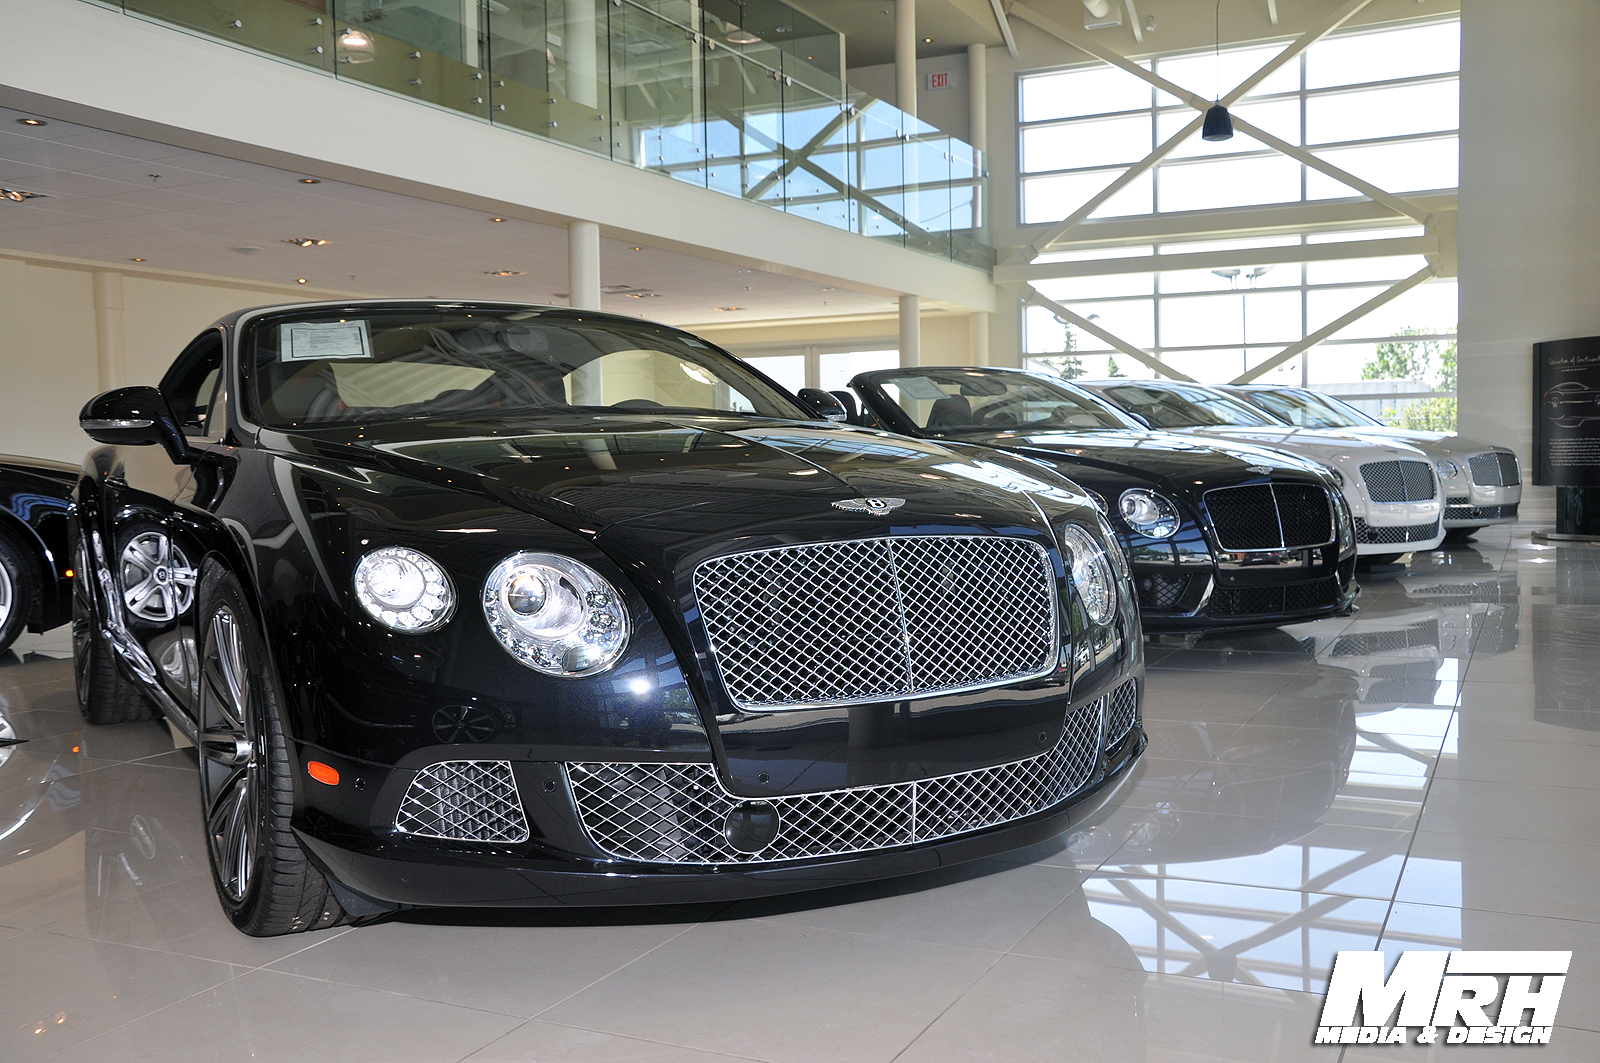 Dealer Visit Western Canada's Aston Martin And Bentley